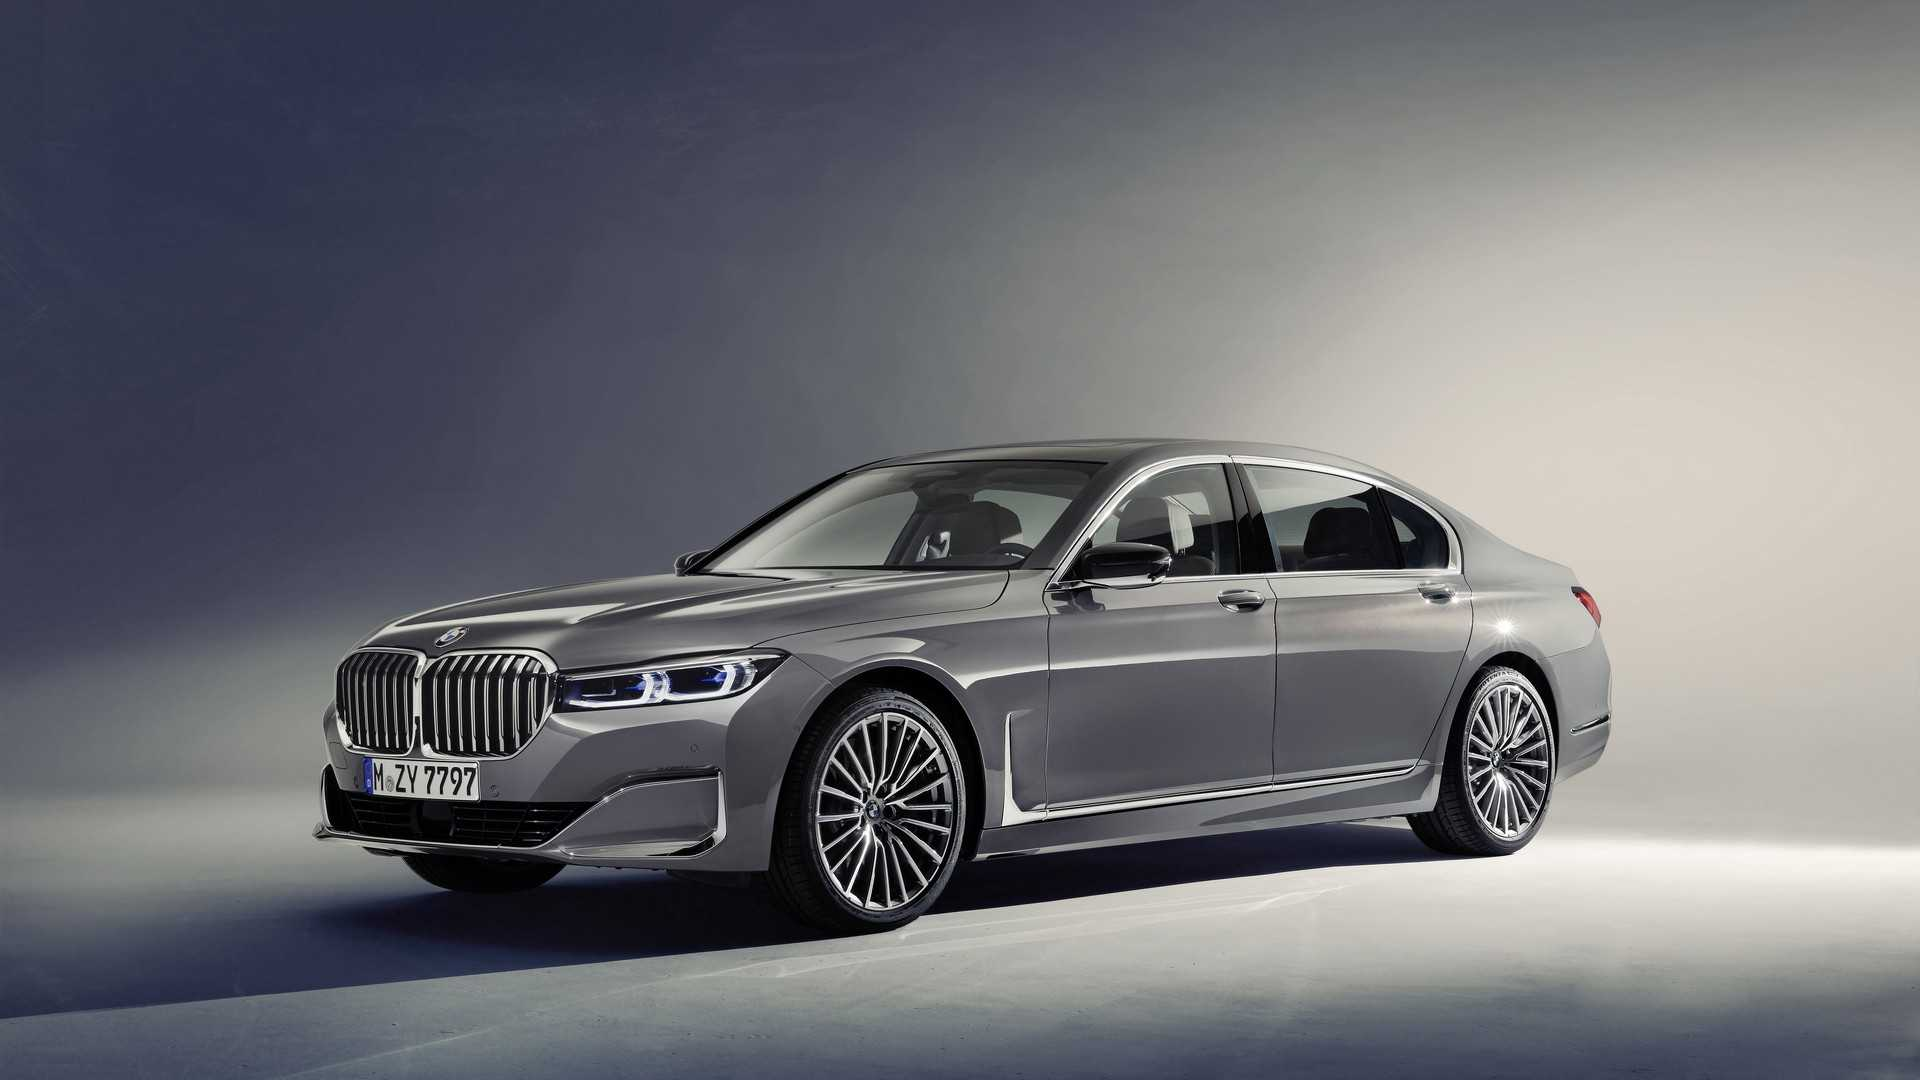 91 All New 2020 BMW 7 Series Reviews